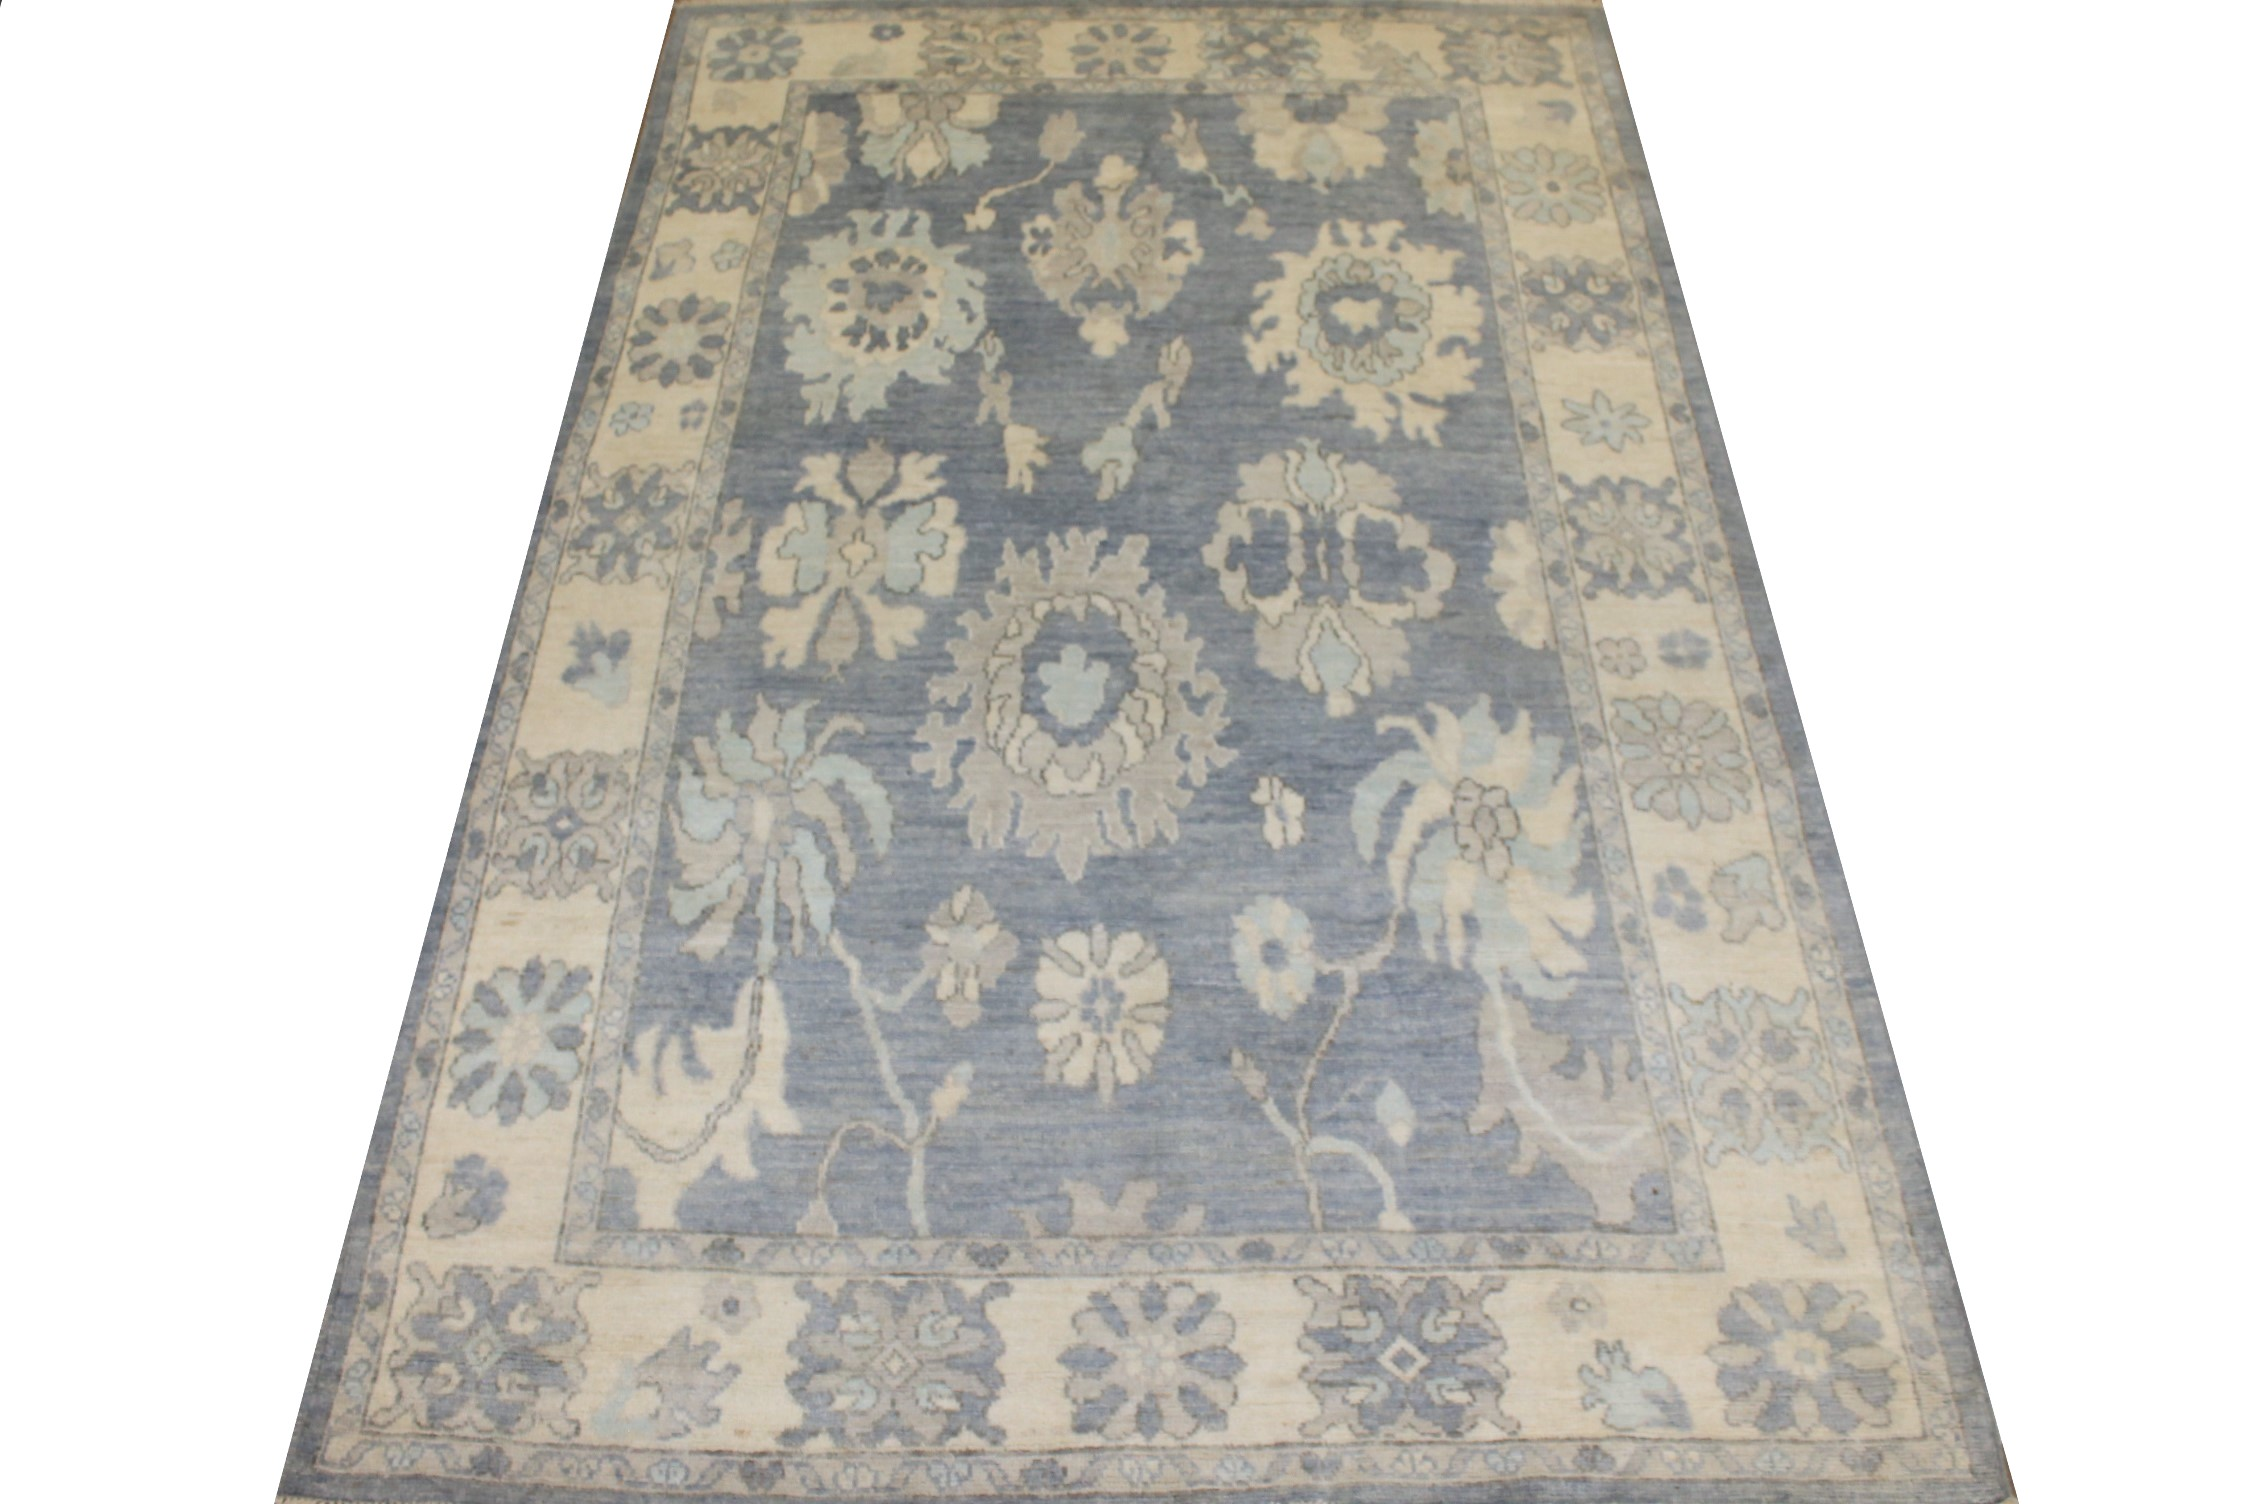 6x9 Oushak Hand Knotted Wool Area Rug - MR025425